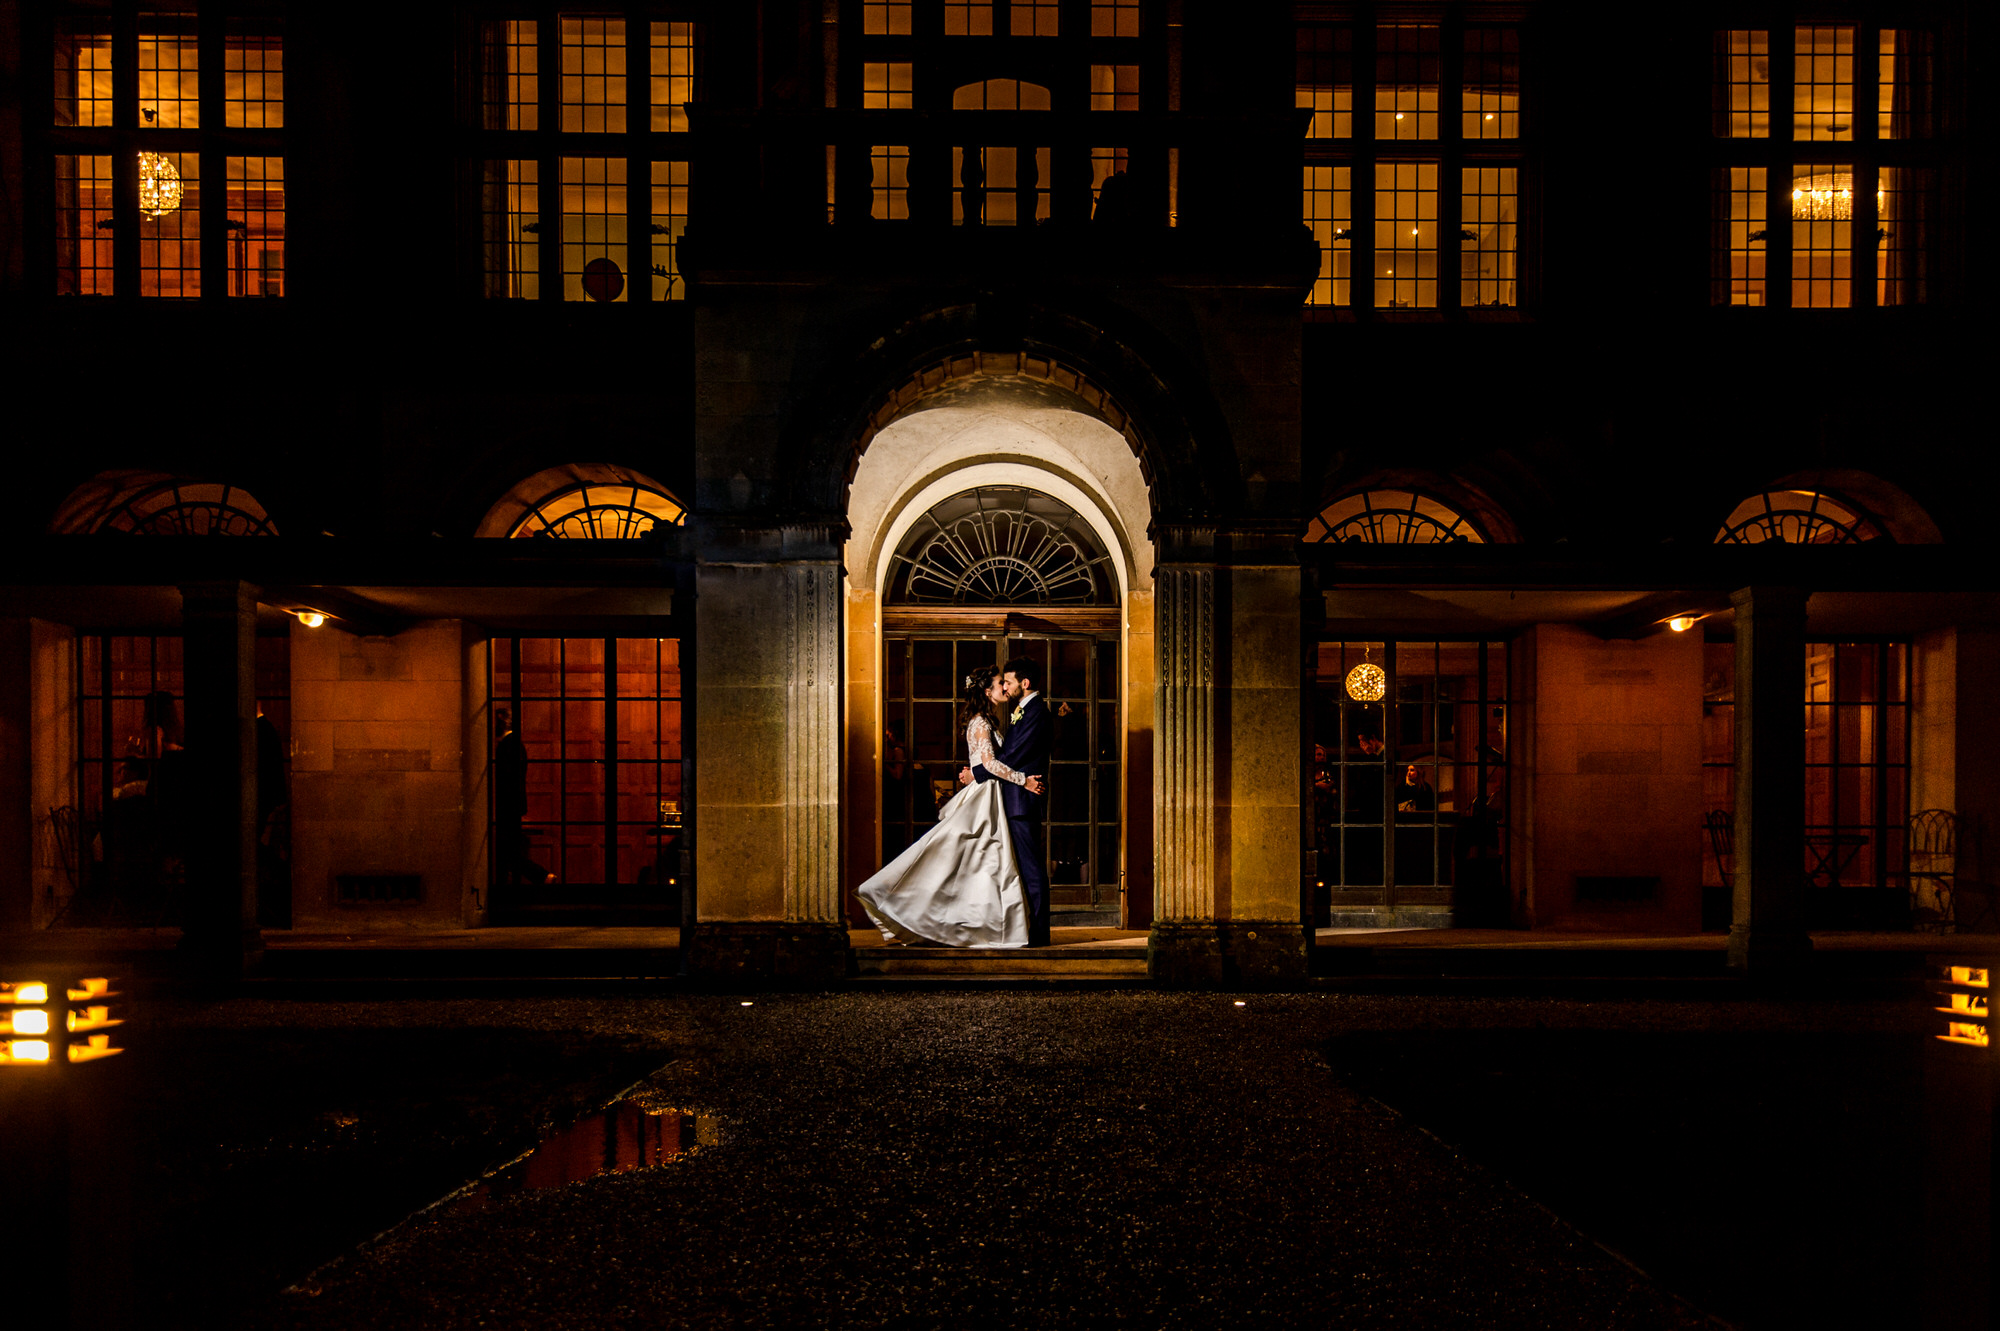 Coombe lodge wedding venue night portrait